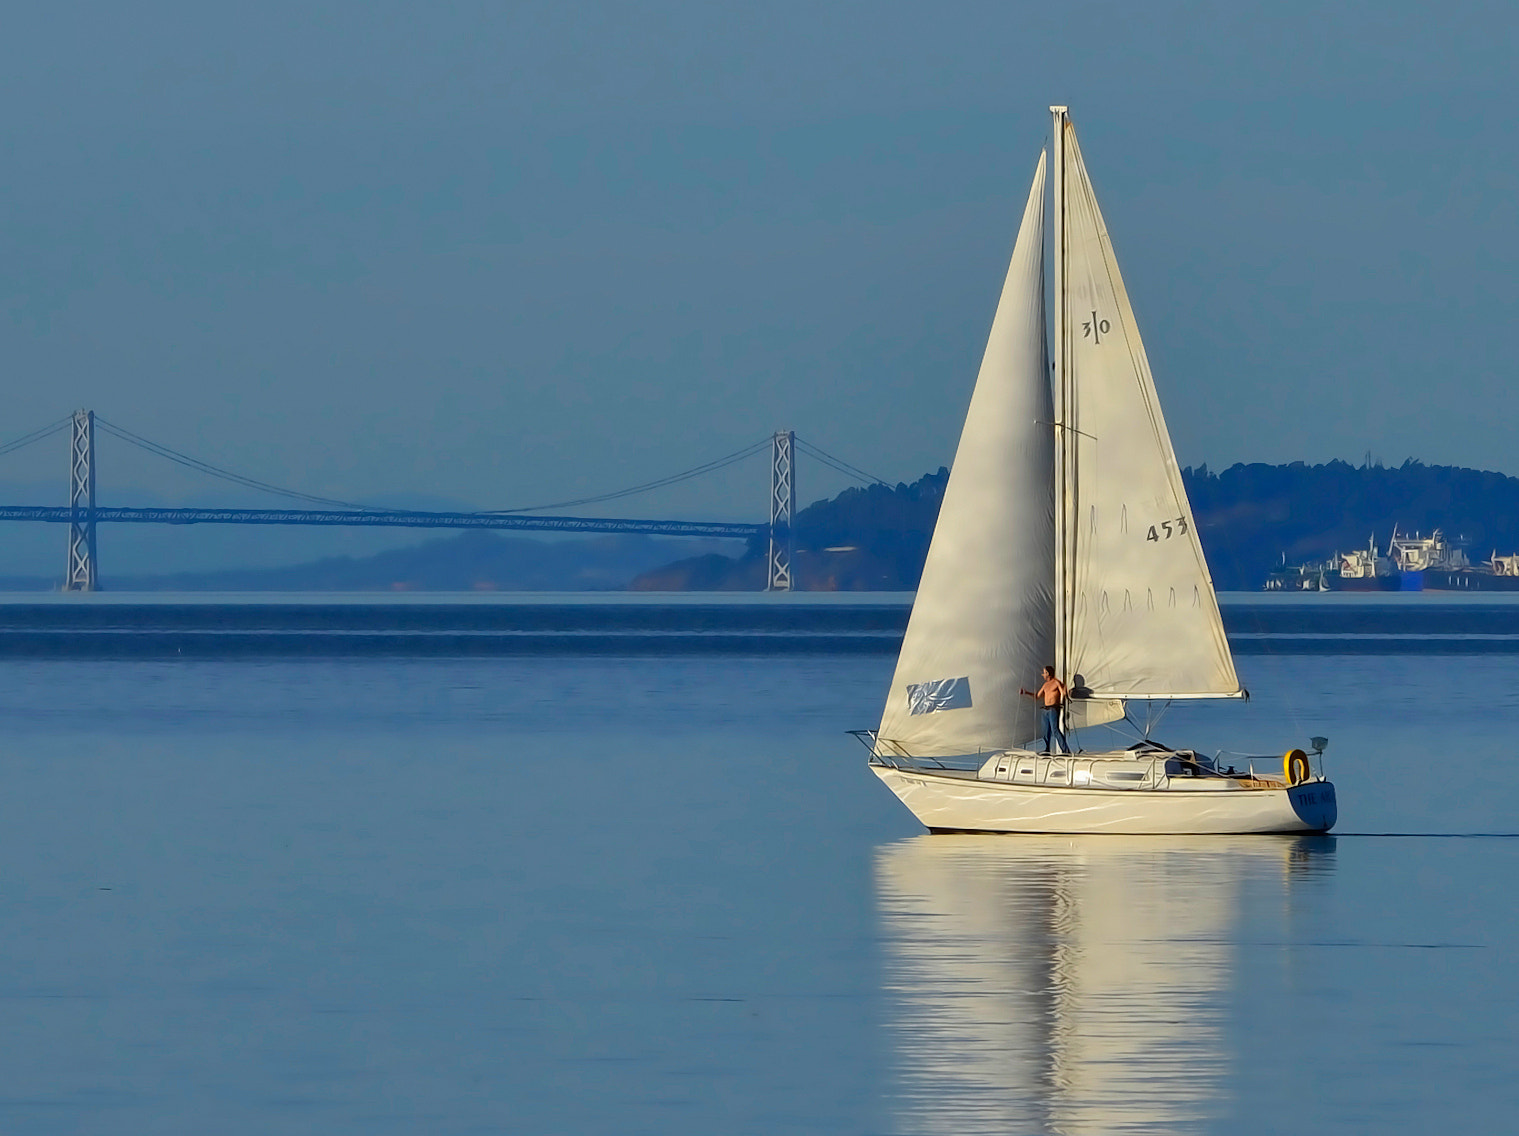 Photograph November Sail by Phyllis Plotkin on 500px